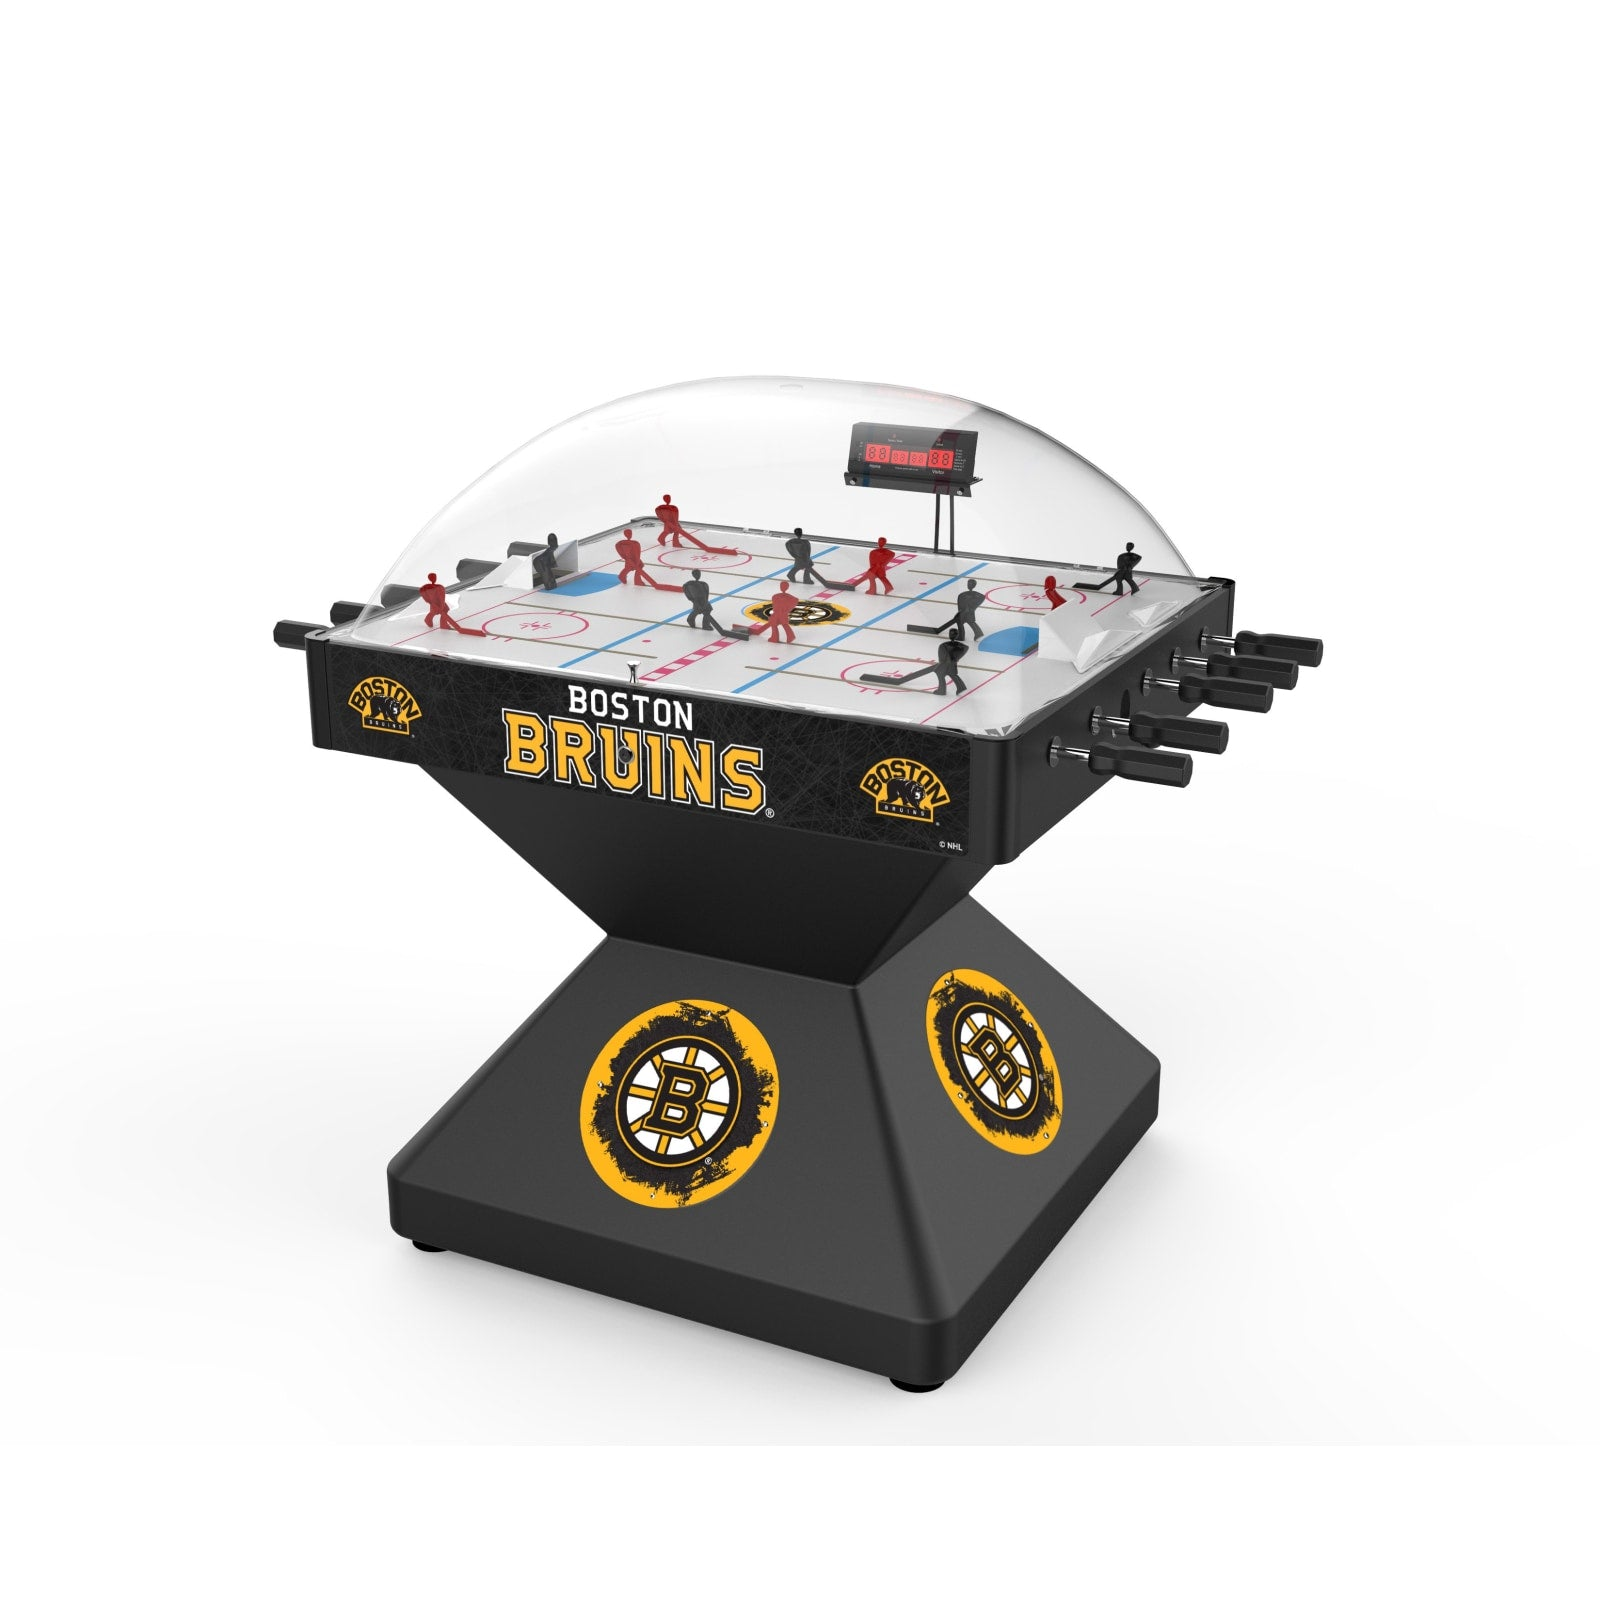 Boston Bruins Dome Hockey Deluxe Edition Game by the Holland Bar Stool Co